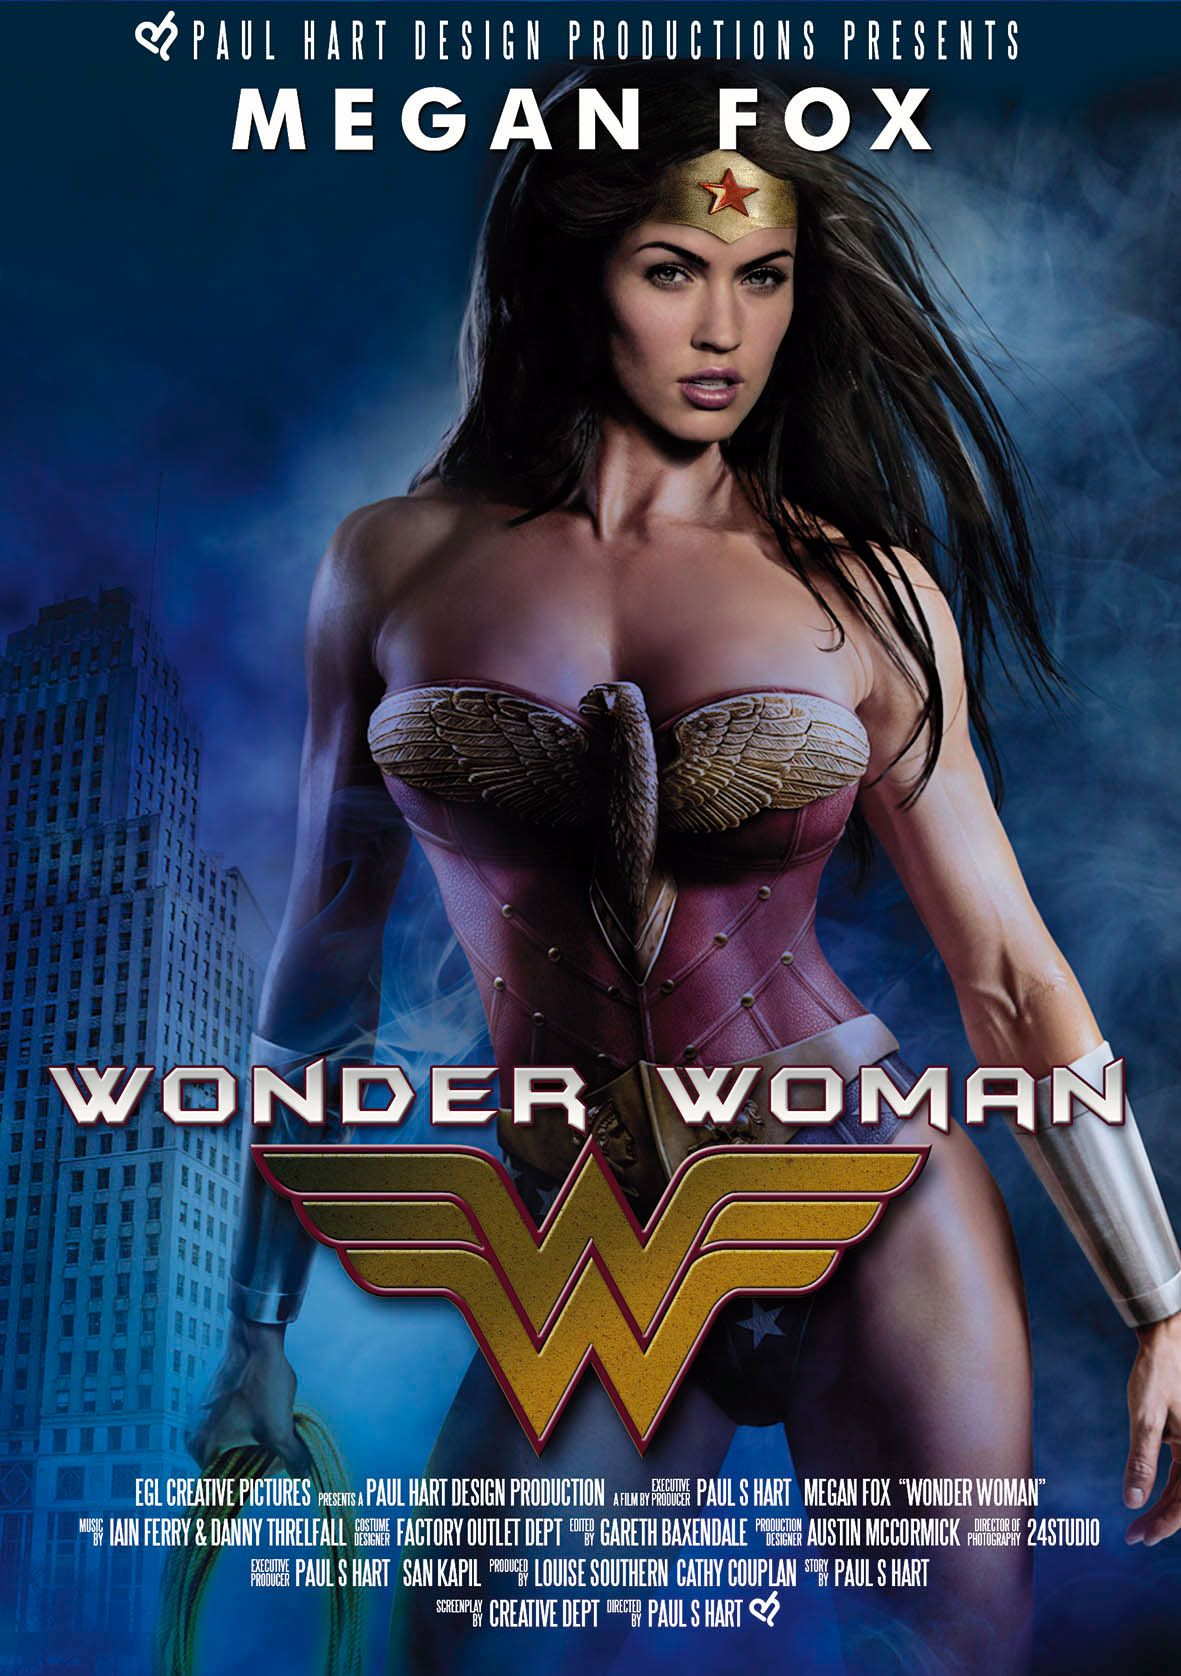 fox as movie woman Megan wonder